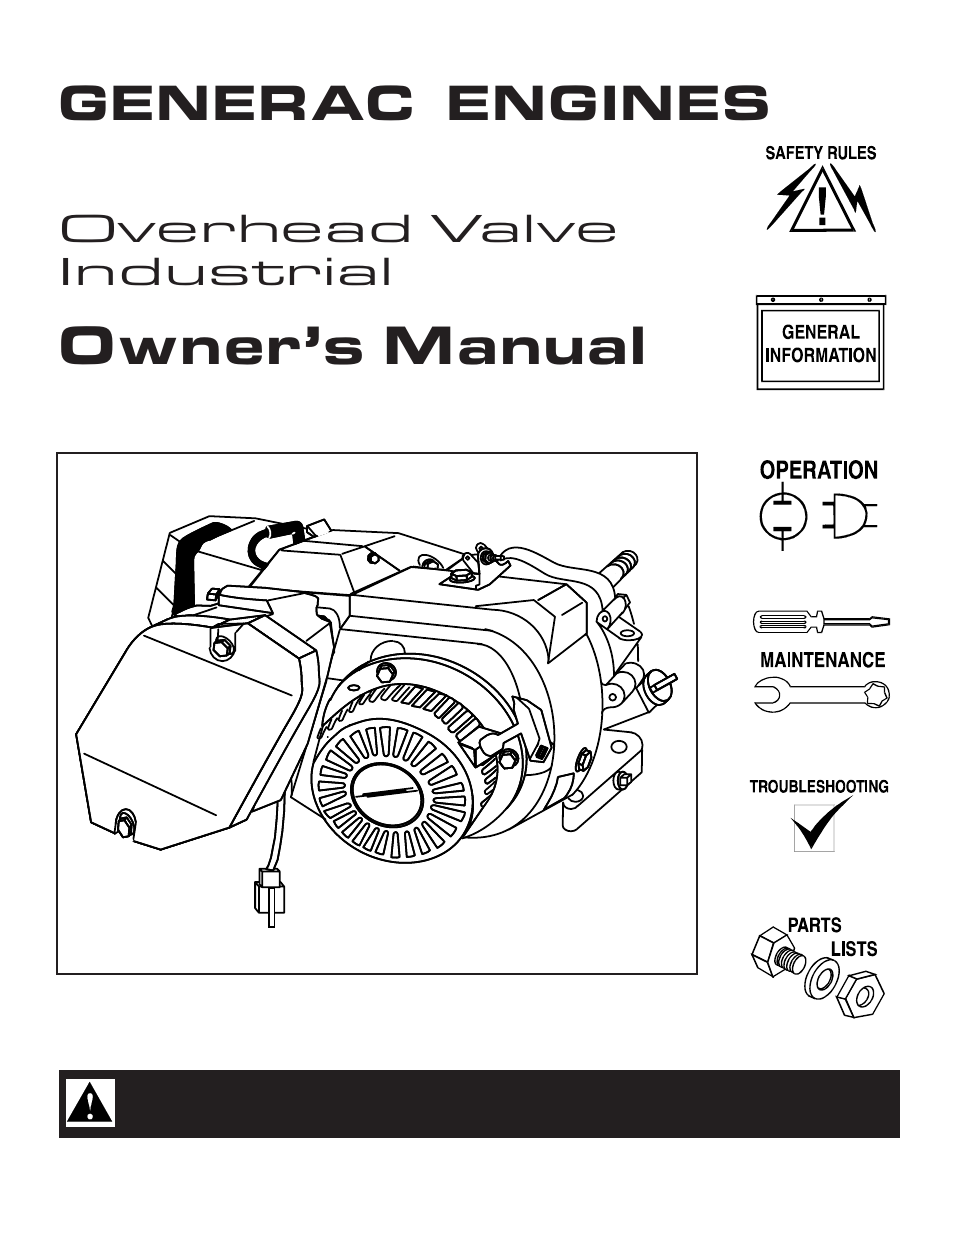 Generac Gn - 360 User Manual | 24 pages | Also for: GN - 320